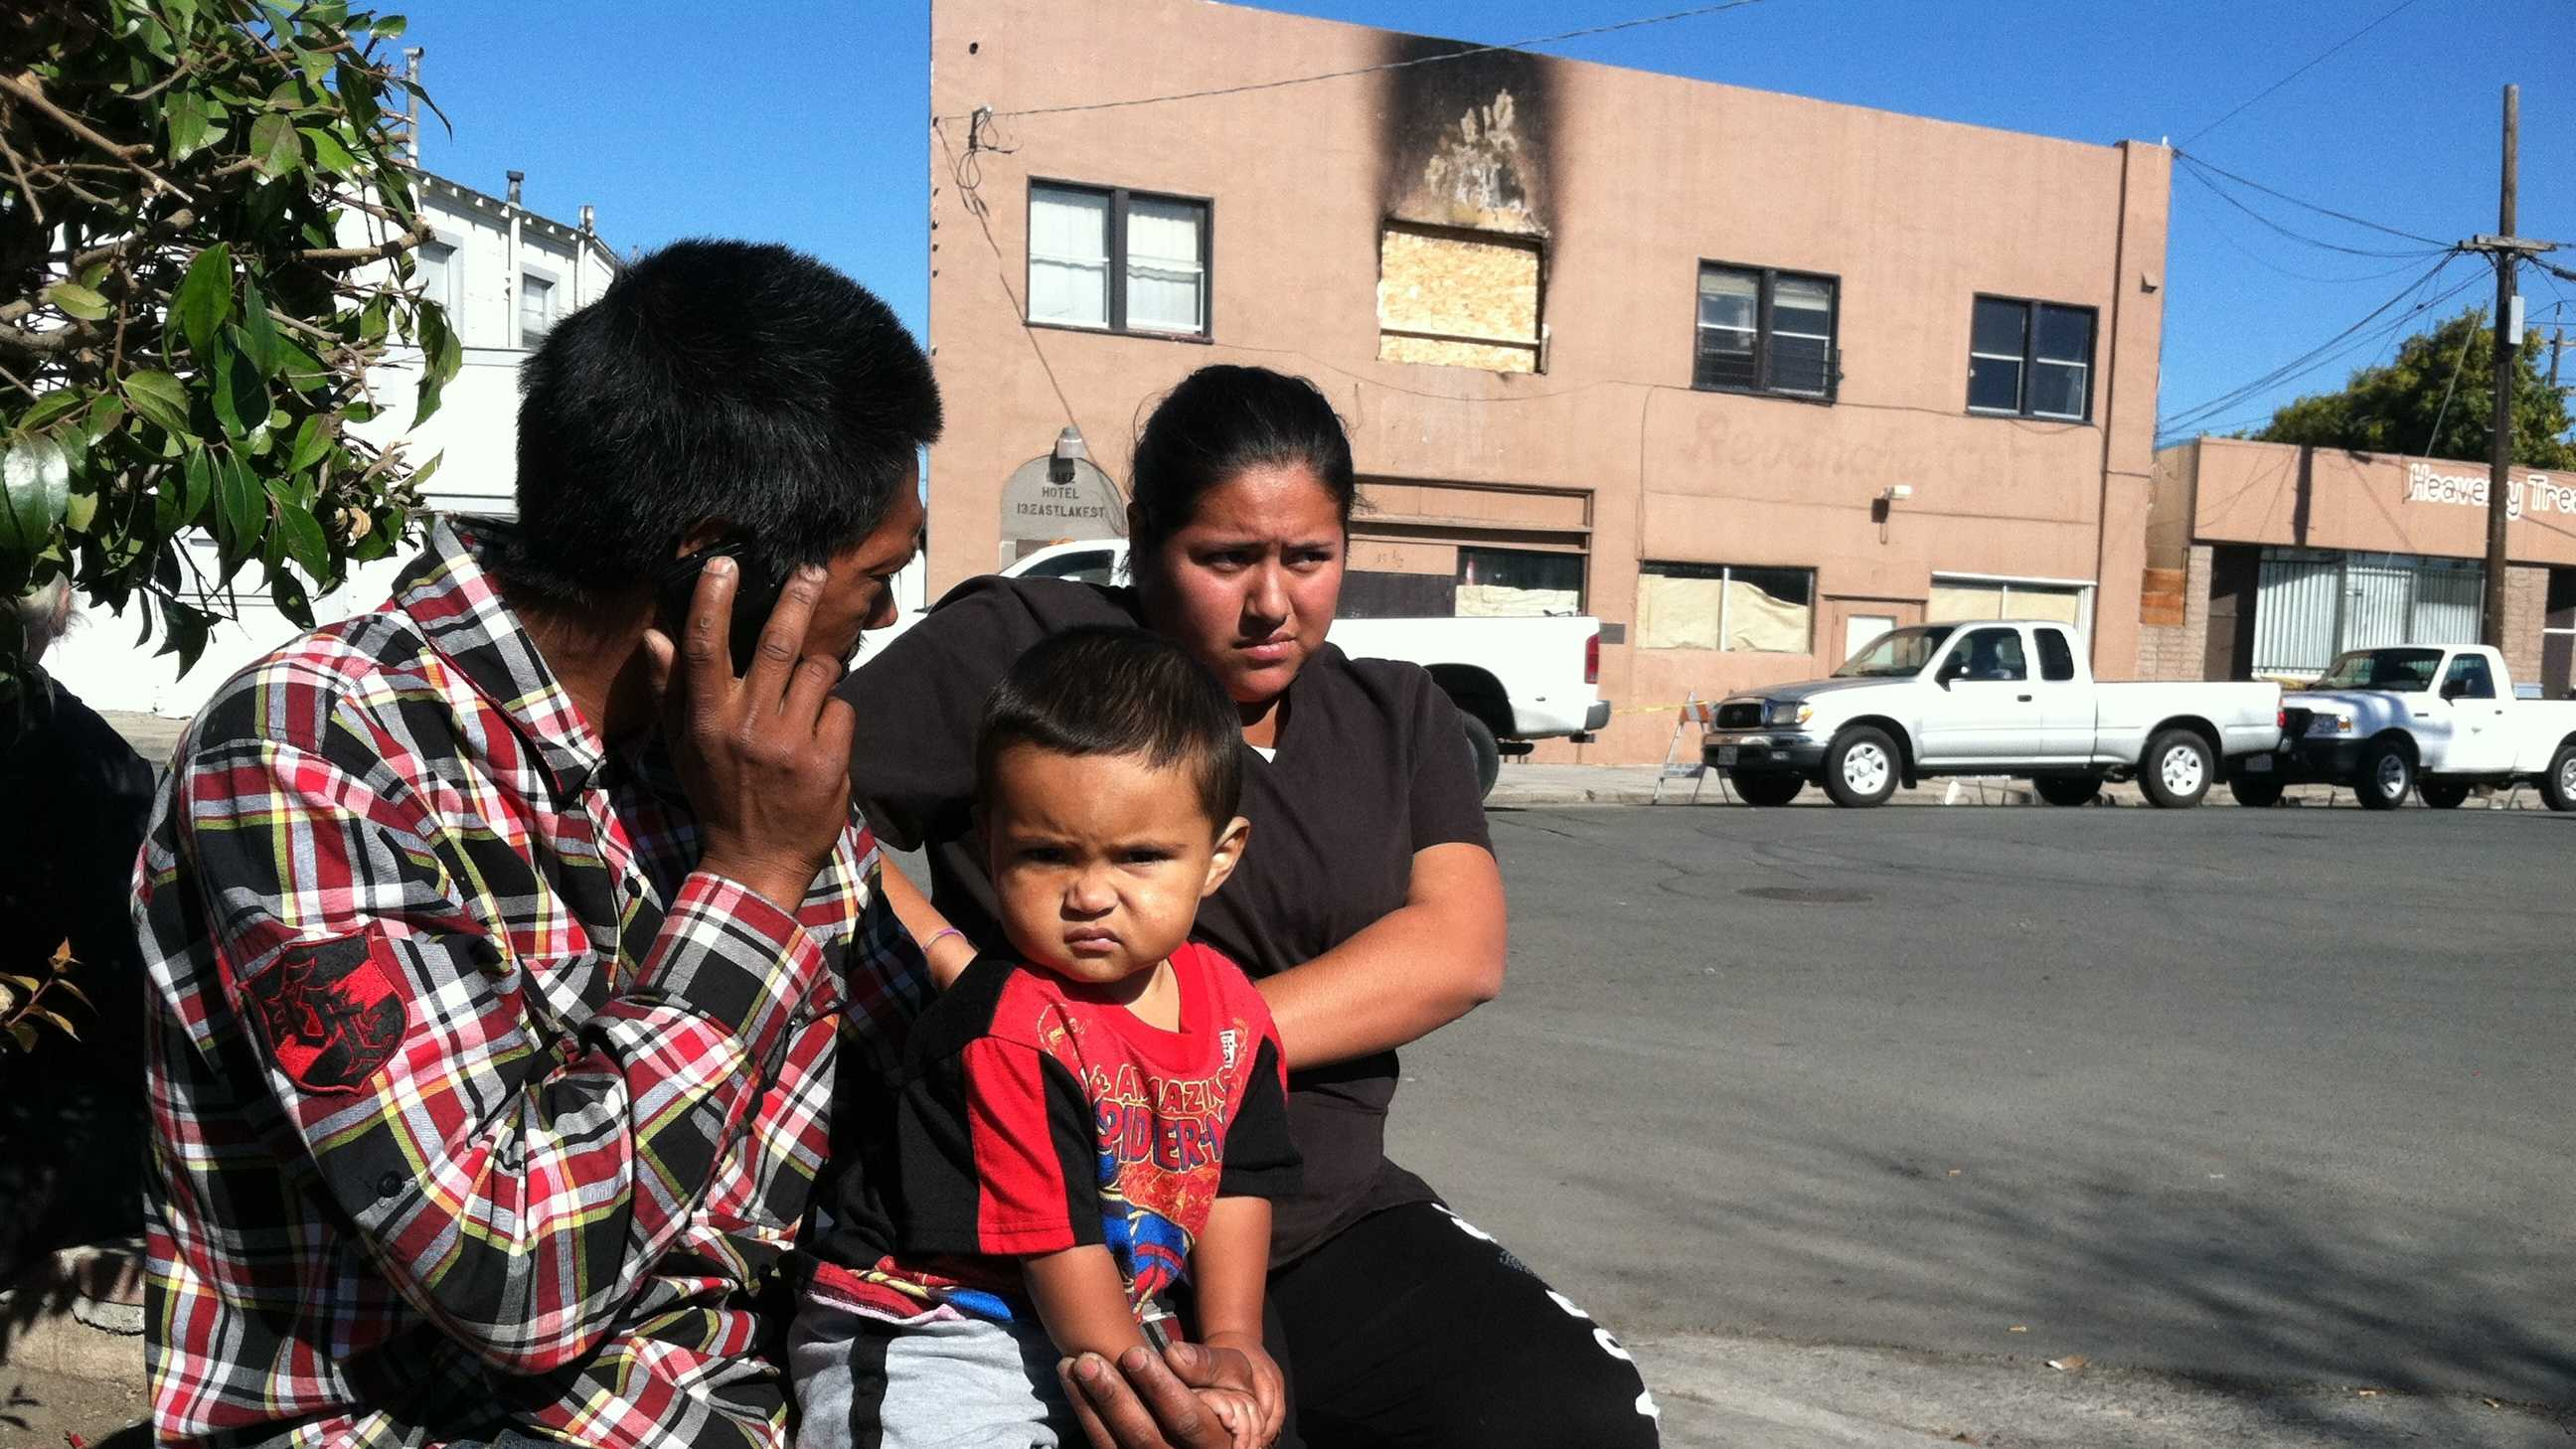 Angel Ochoa, his fiancee Jessica Cardenas and their son, Angel Ochoa Jr., were displaced after a weekend fire at the Lake Hotel in Salinas.